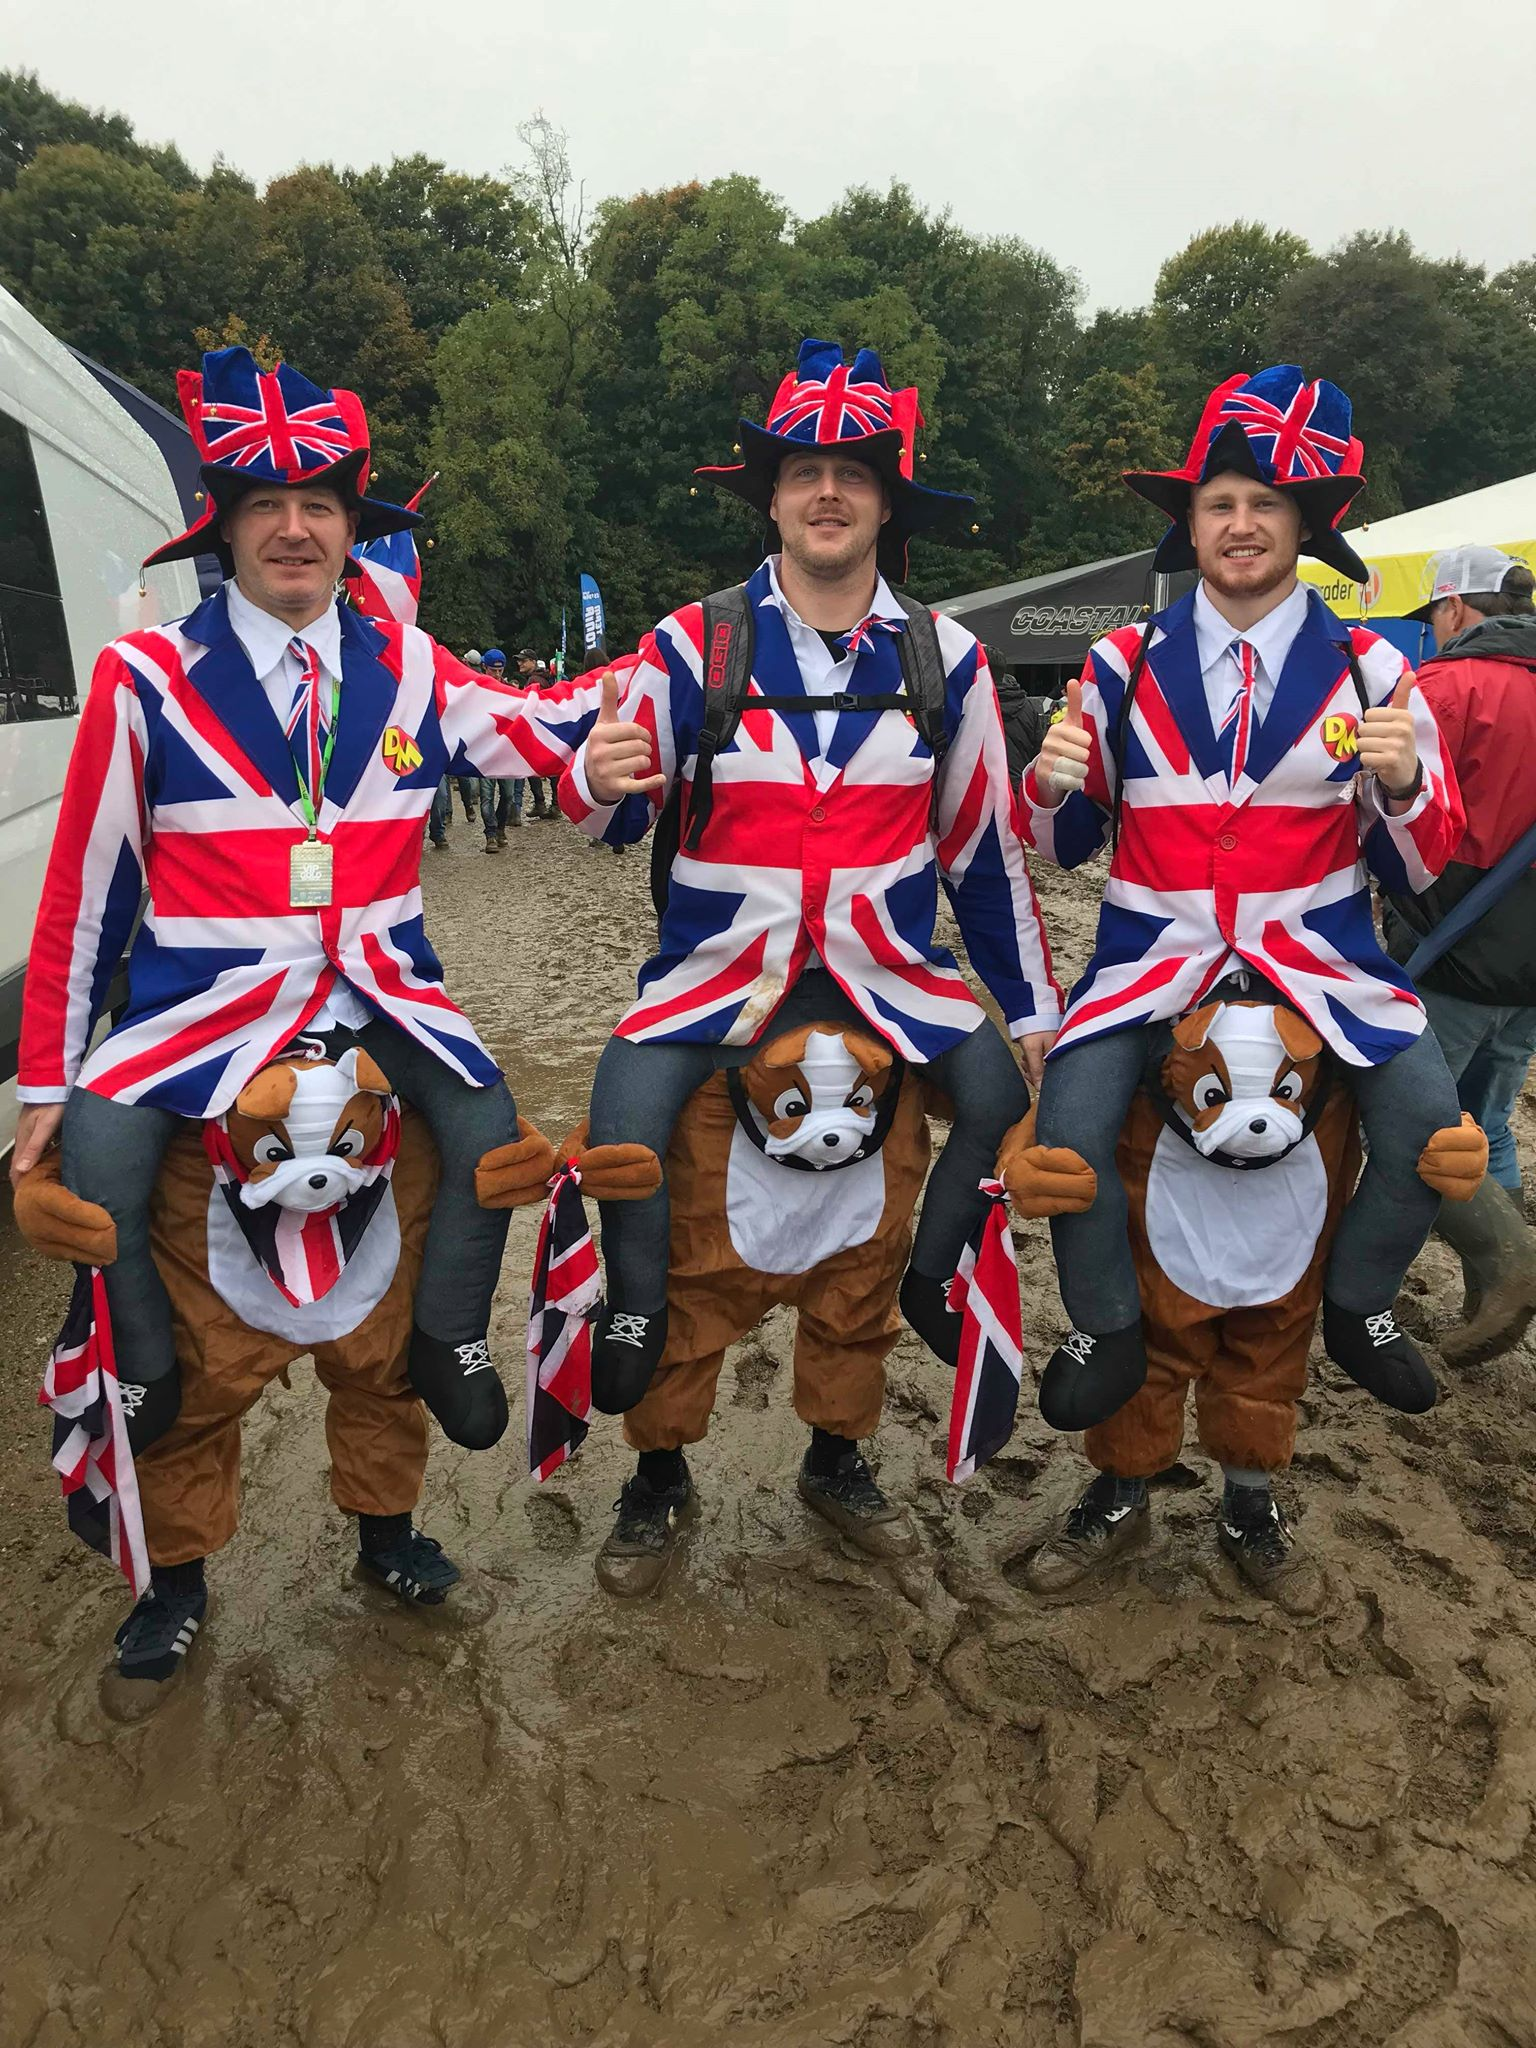 National pride was in full display at the MXDN. From countries far and wide, there wasn't a shortage of costumes, flags, and of course chainsaws.